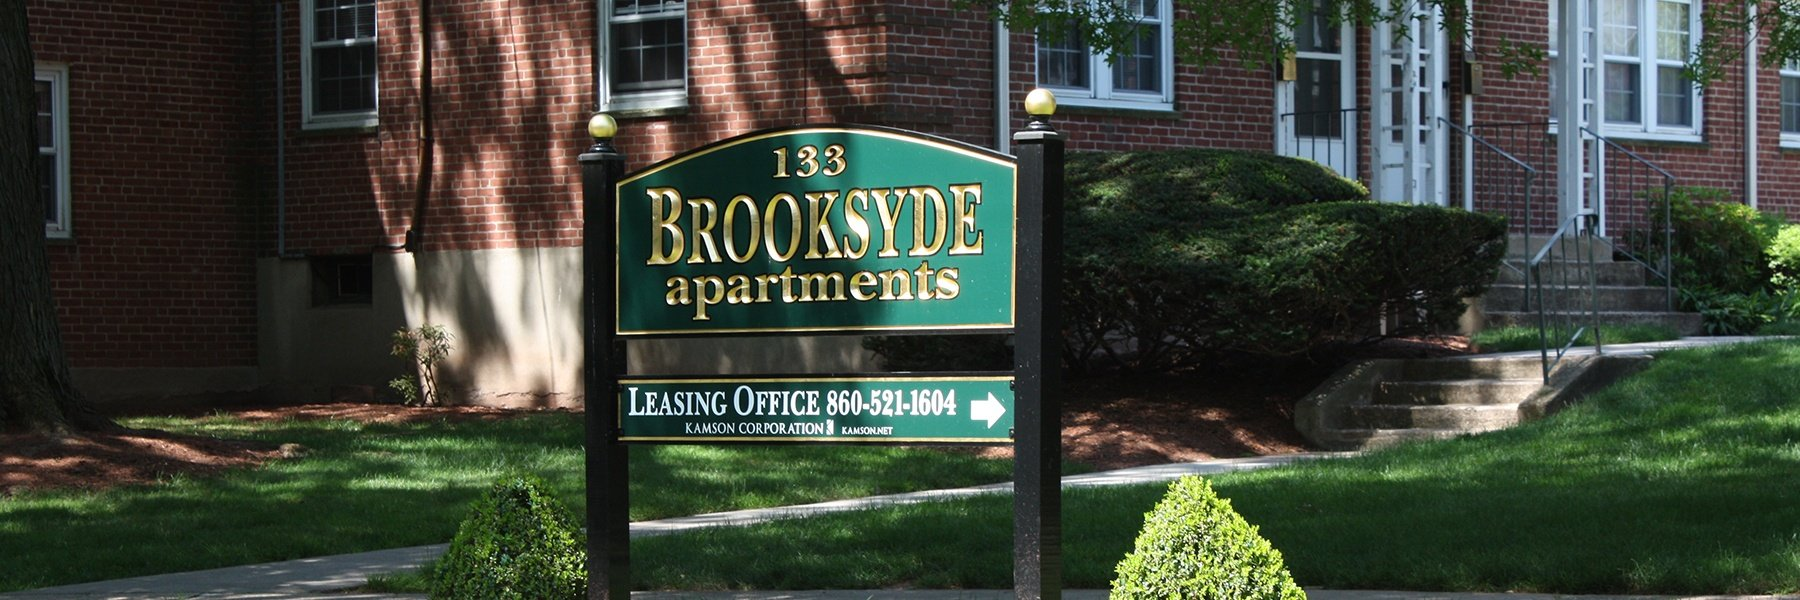 Brooksyde Apartments For Rent in West Hartford, CT Welcome